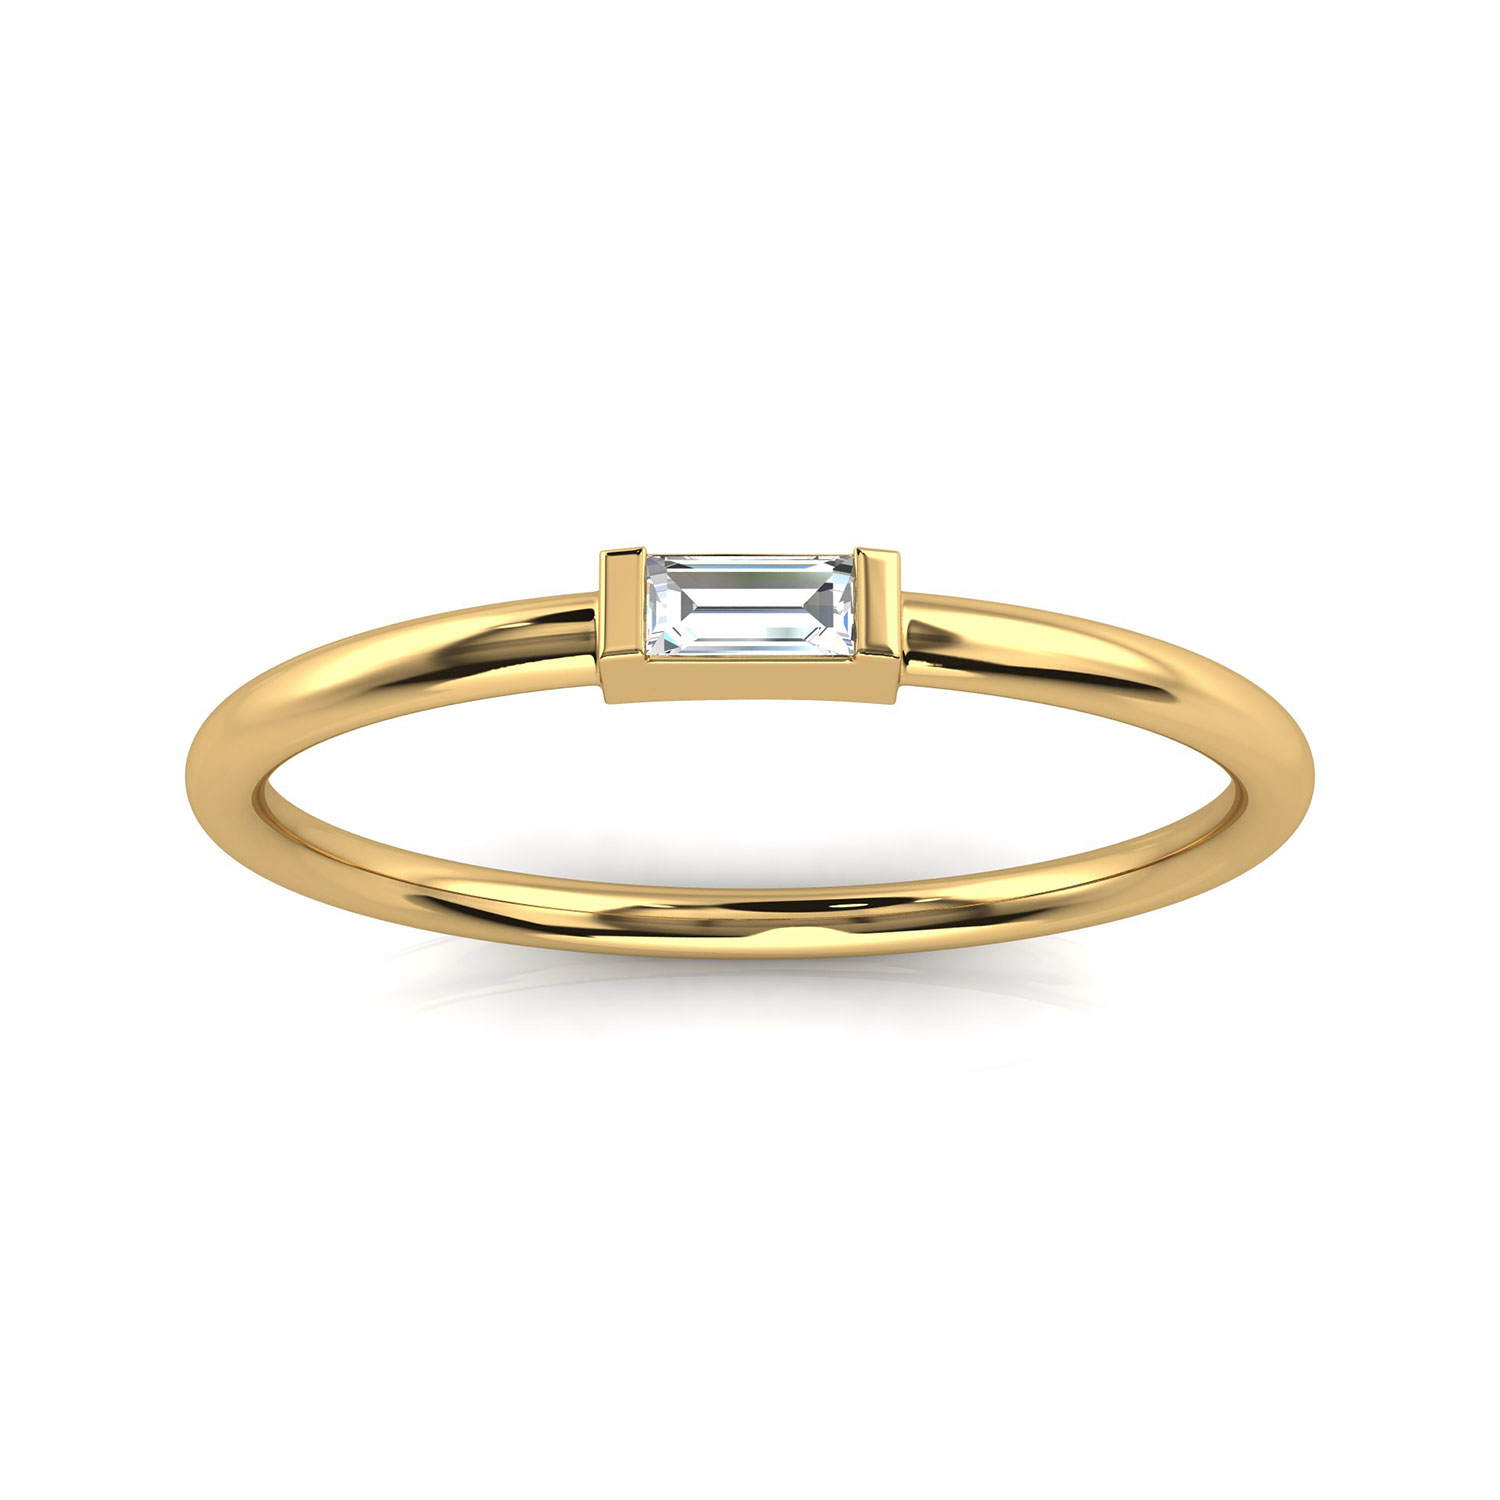 14K Yellow Gold Minimalist Lilach Baguette Solitaire Diamond Ring ( Center- 0.06 Carat)